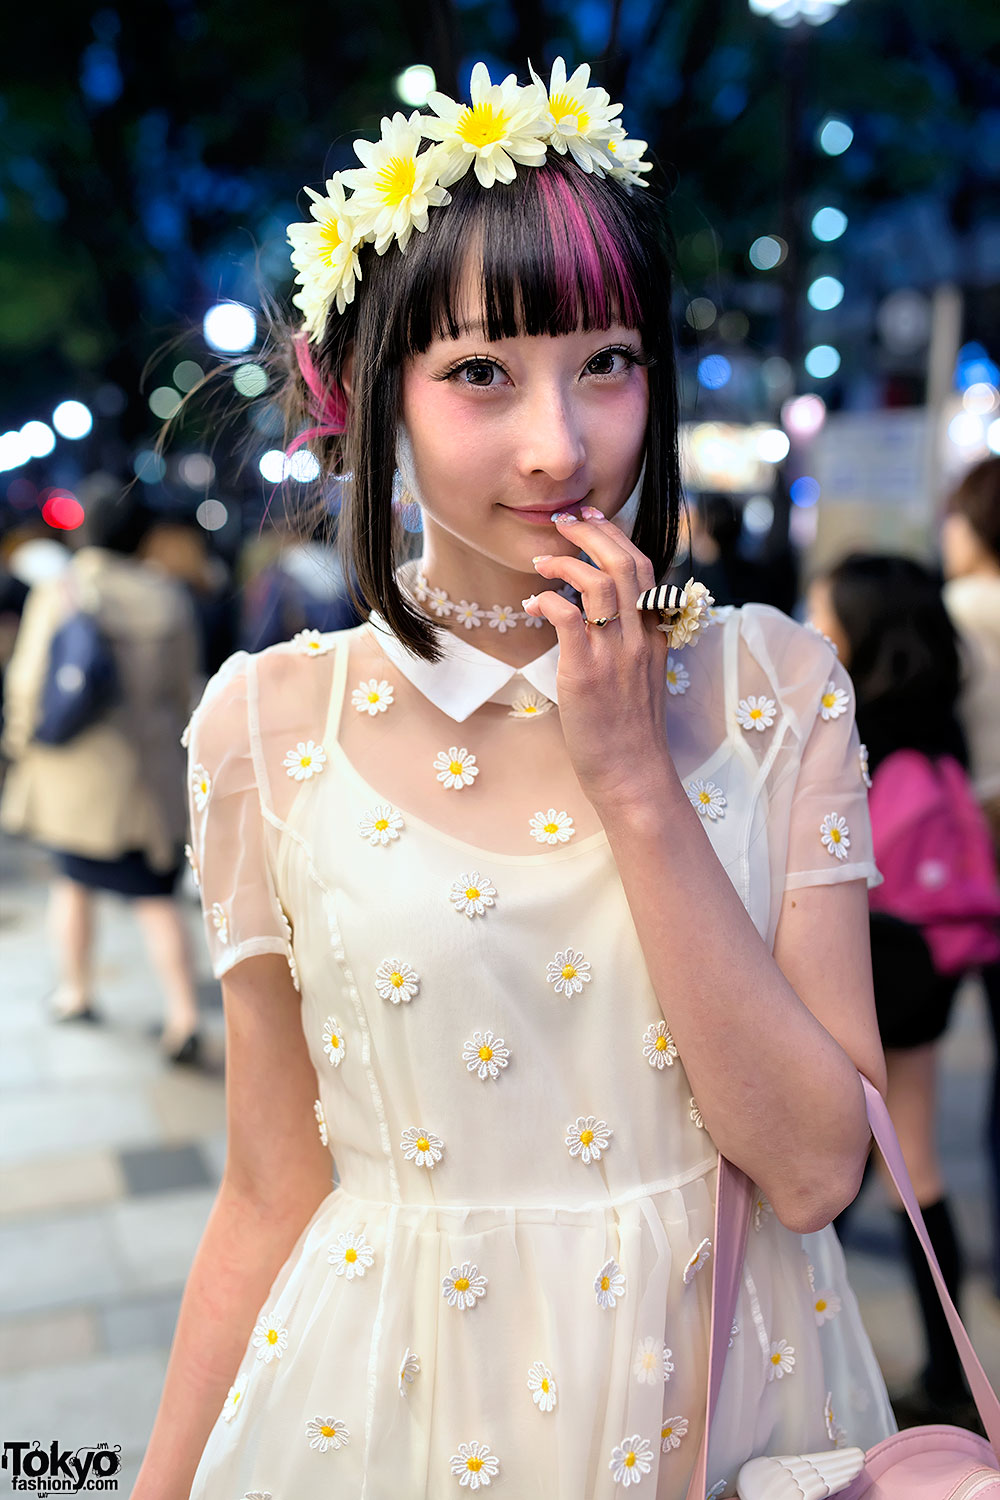 Rinrin Doll In Harajuku W Flower Crown Lillilly Flower